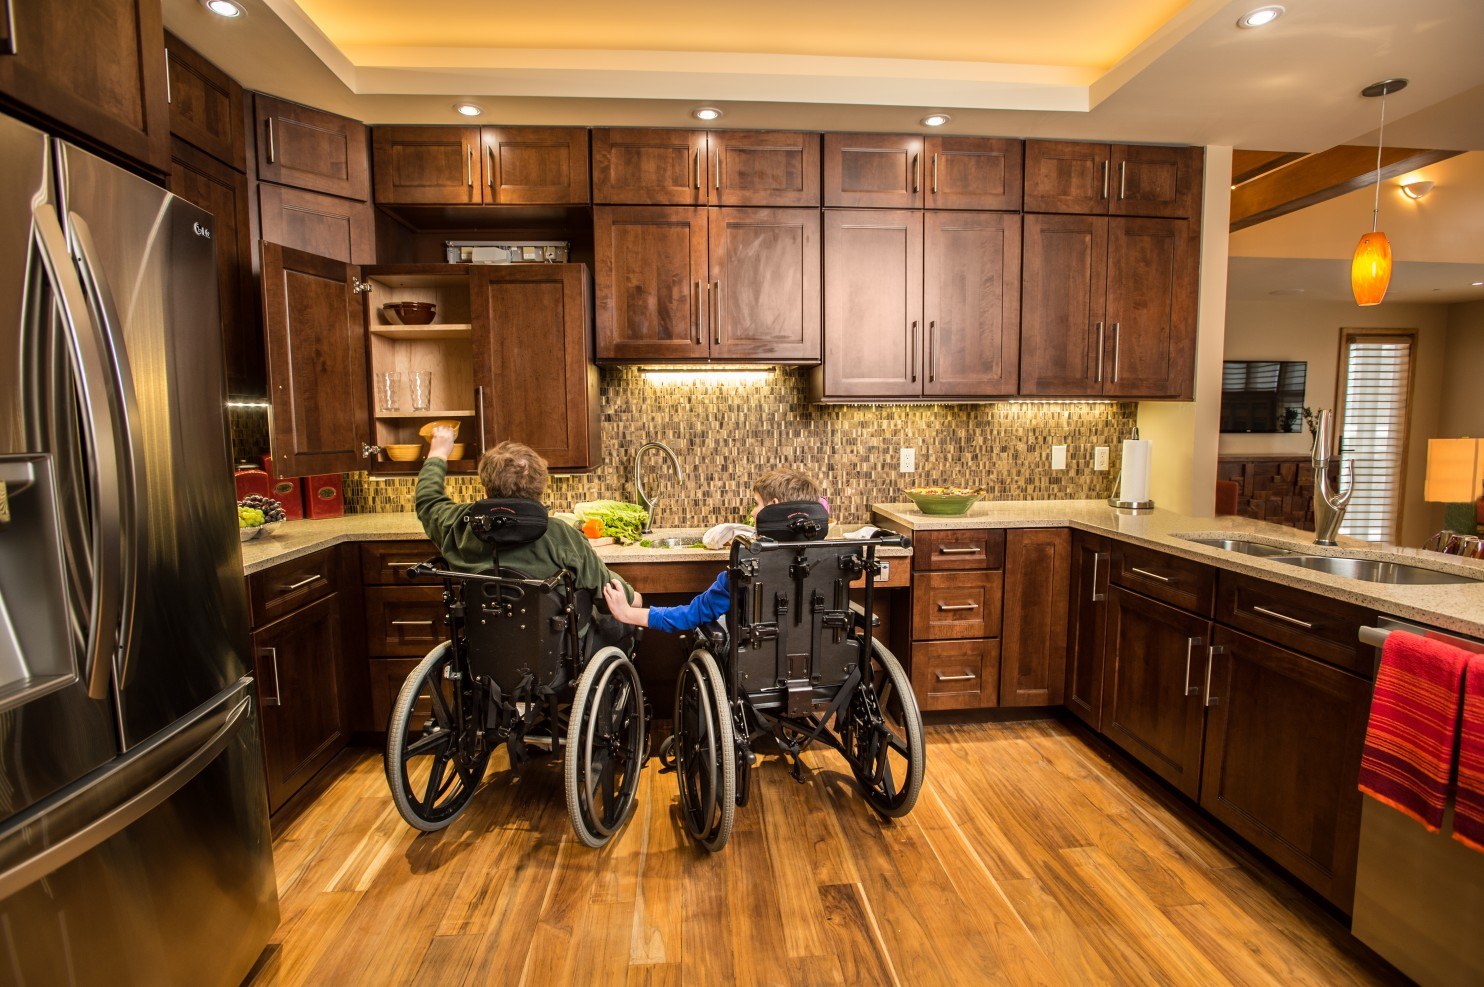 How To Retrofit Your Home for Accessibility